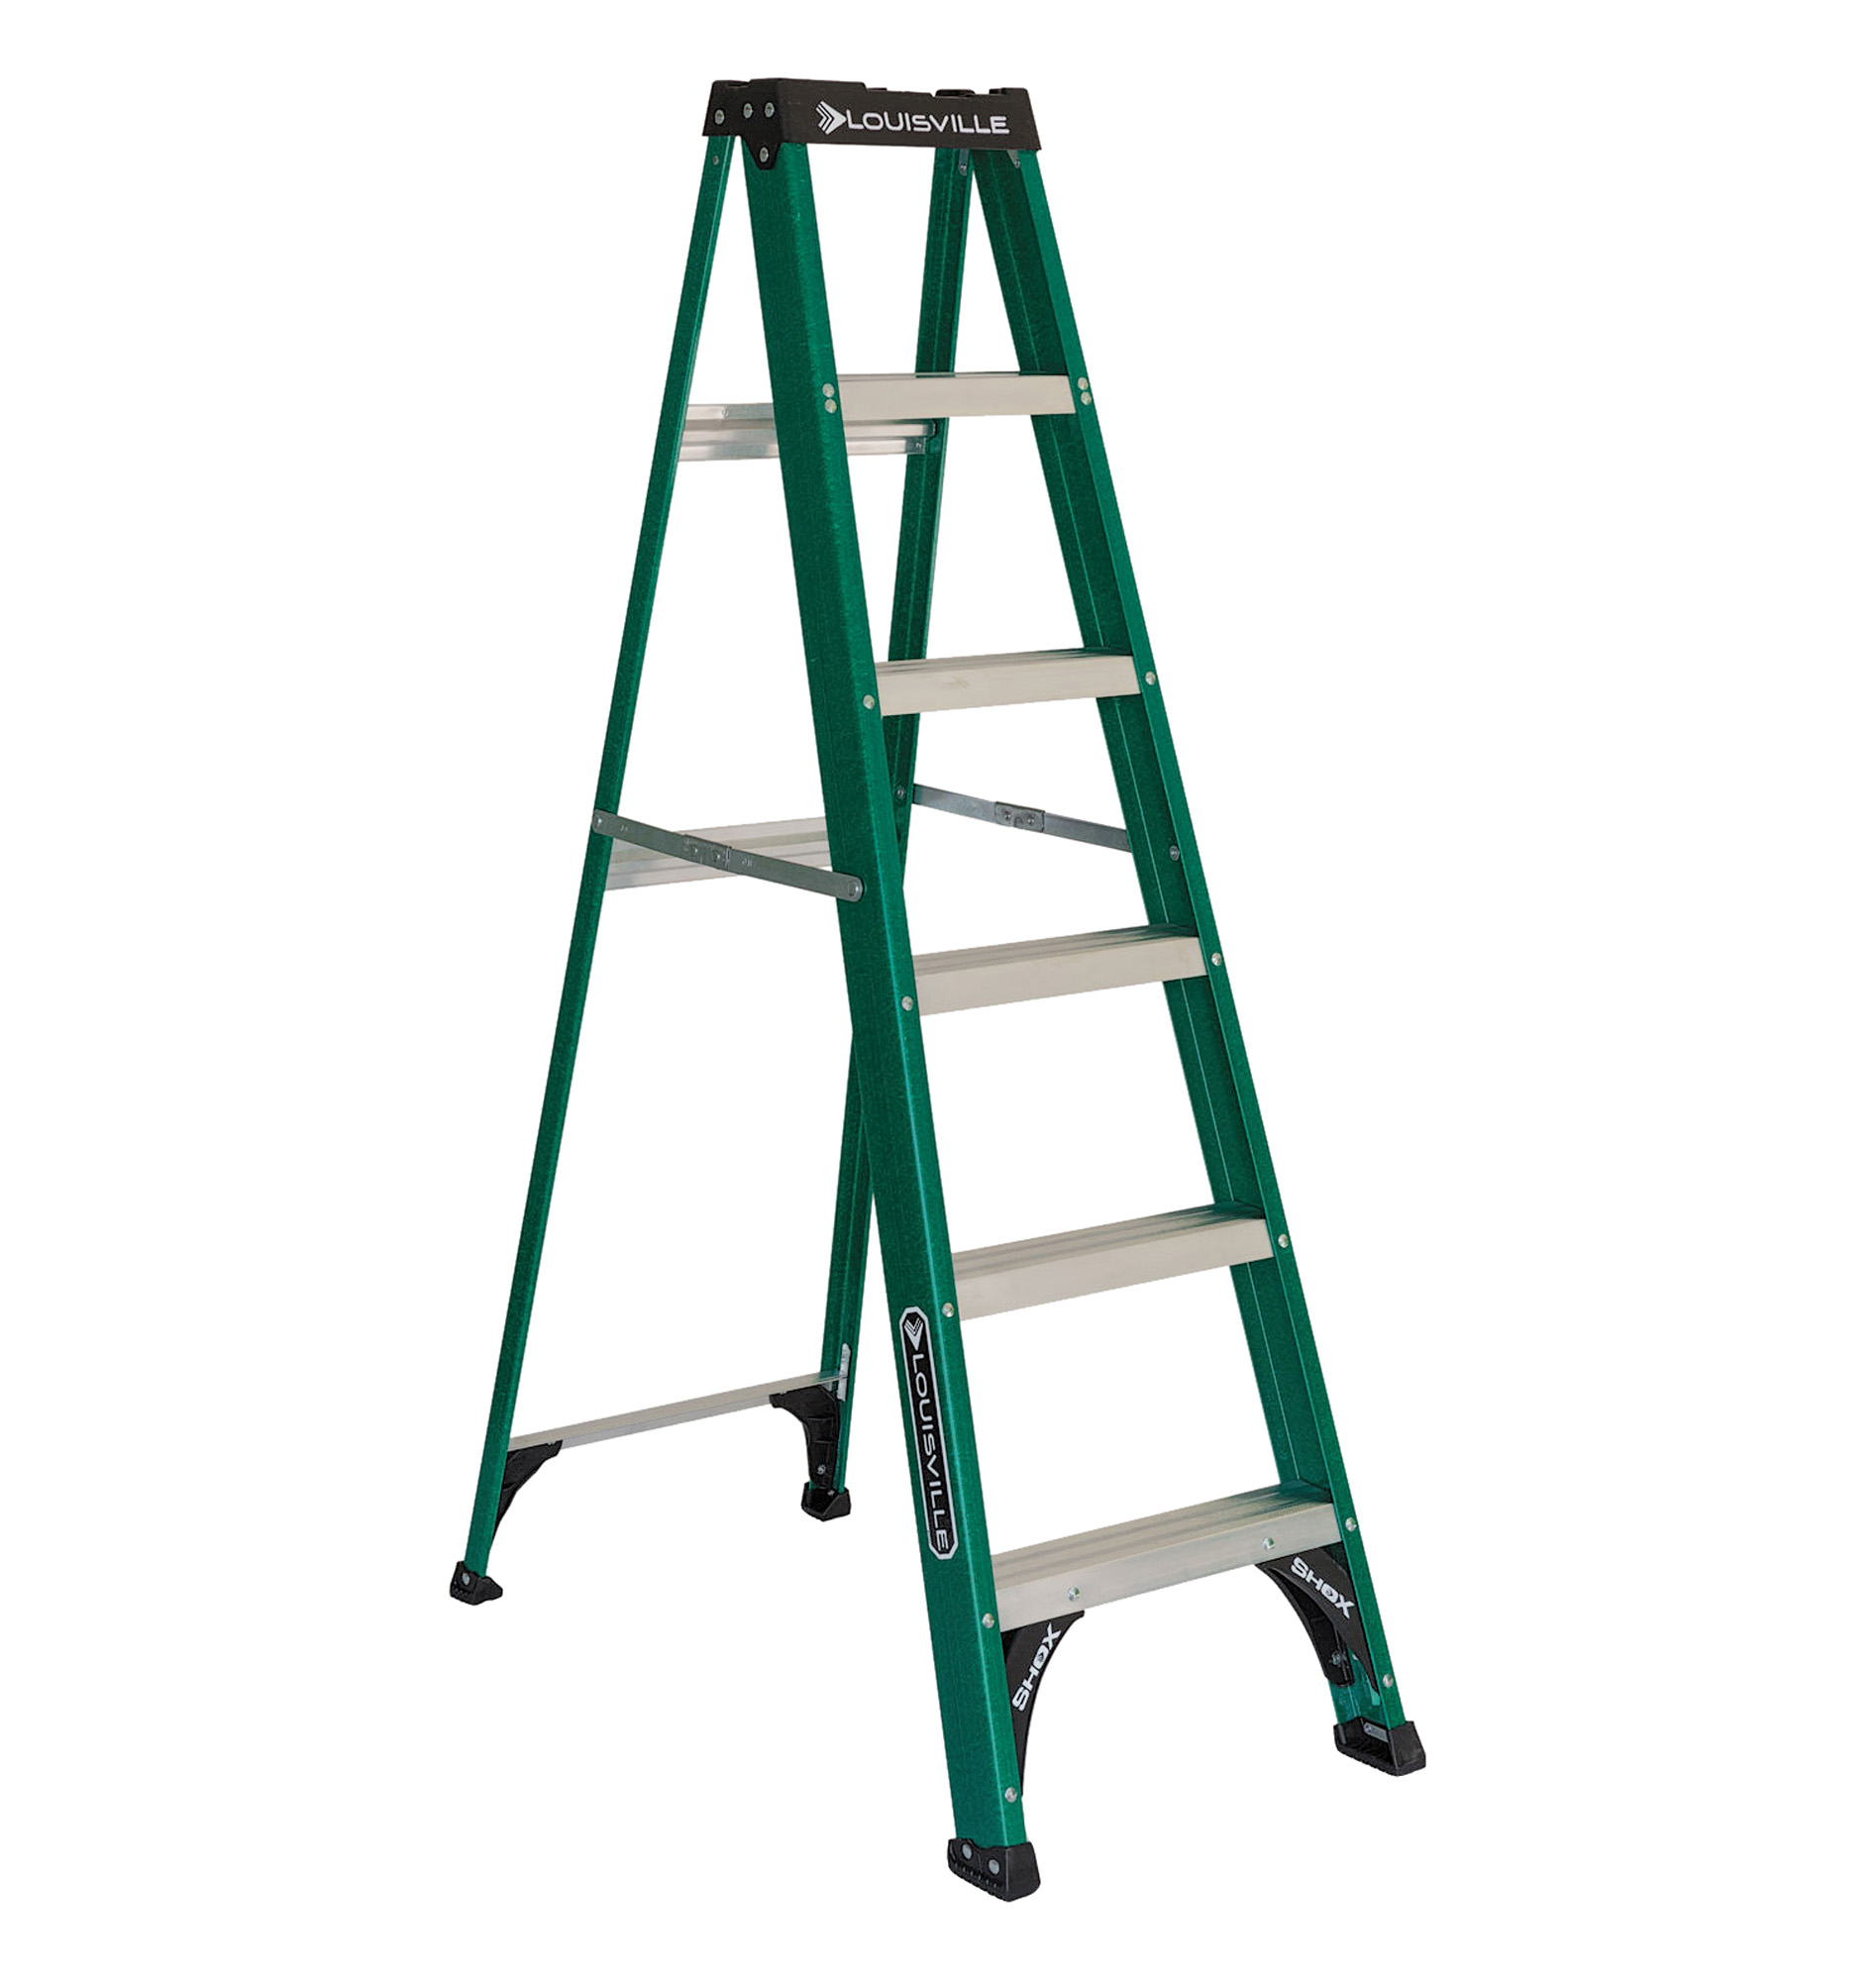 Louisville Ladder 6' Stepladder